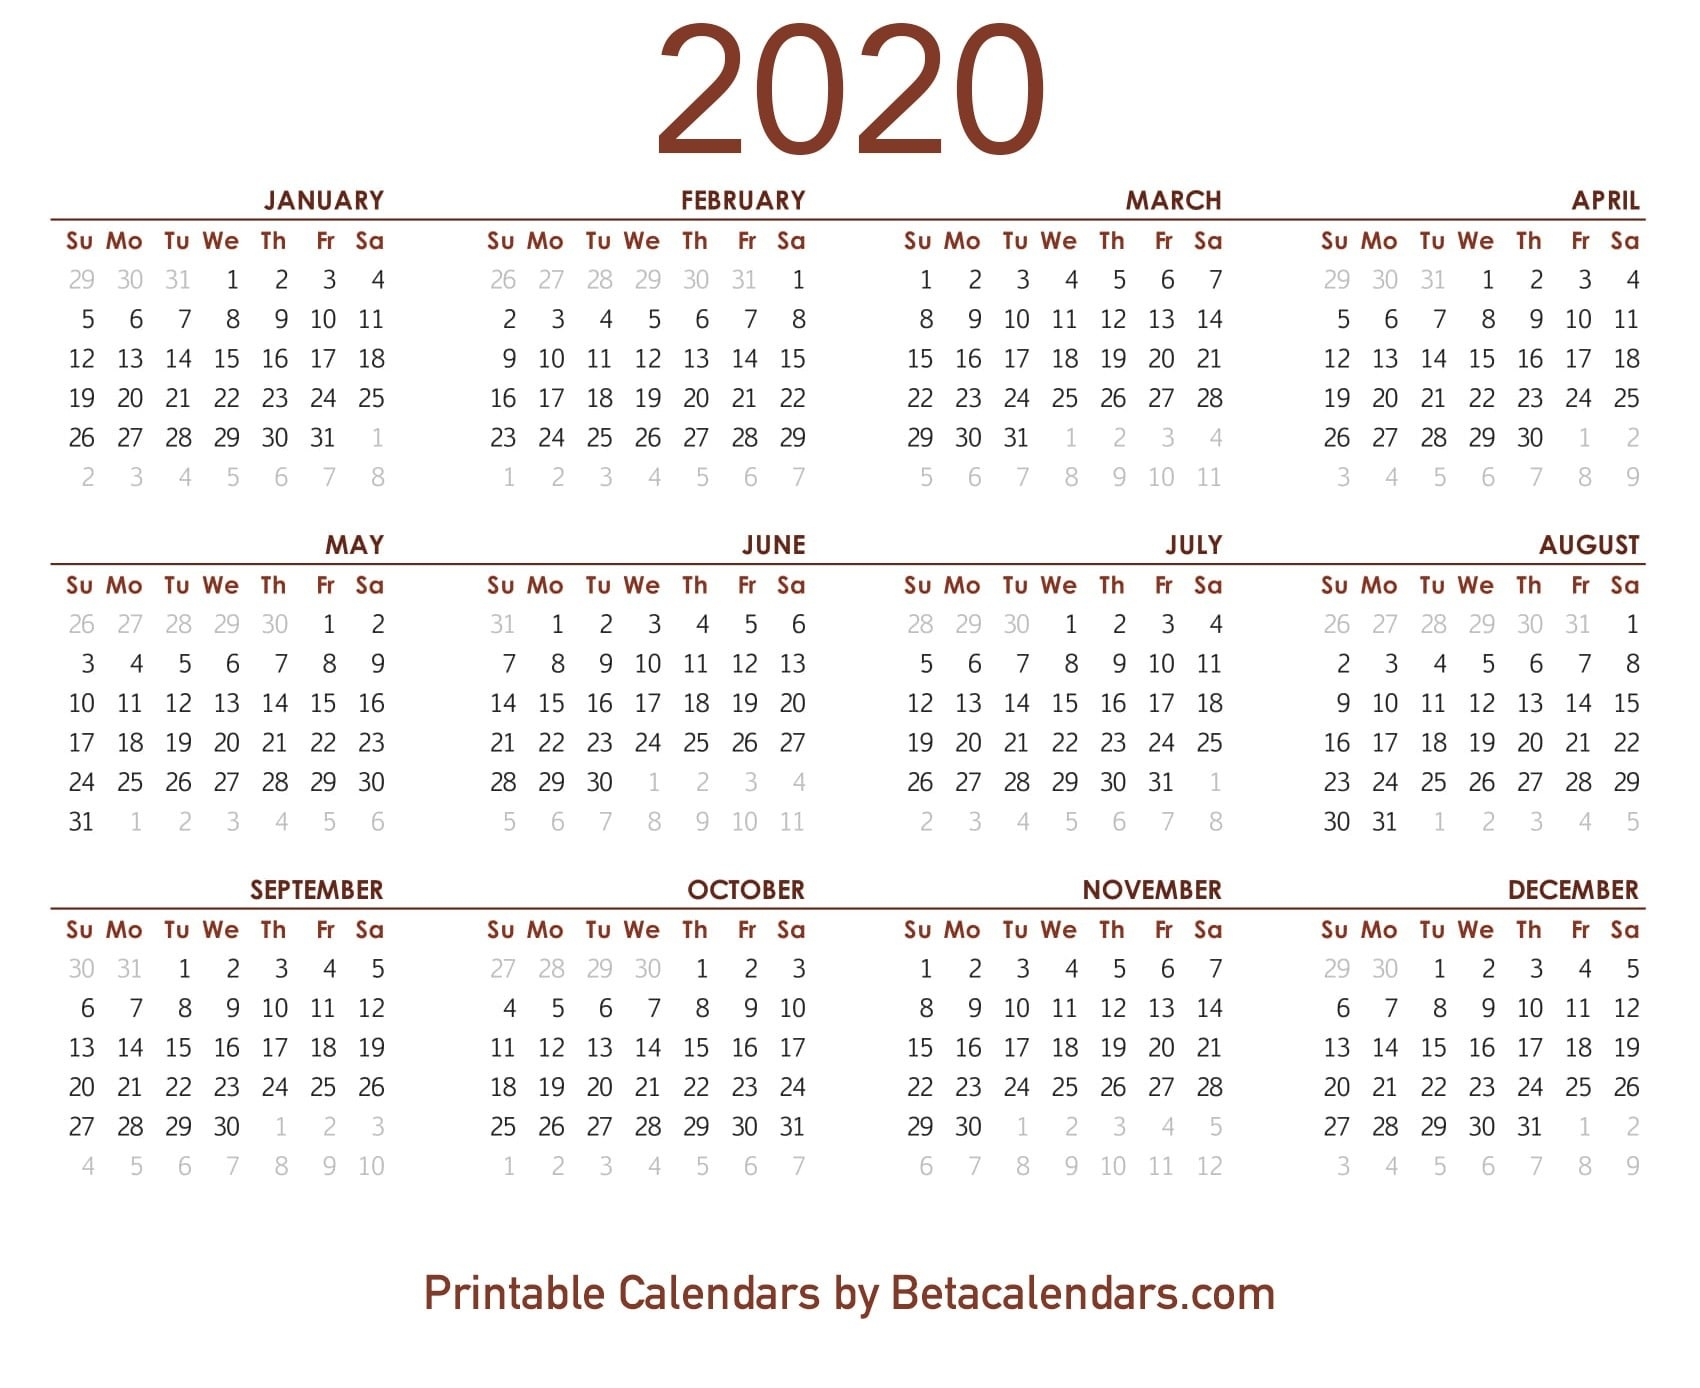 2020 Calendar - Free Printable Yearly Calendar 2020  Calendar Printable 2020